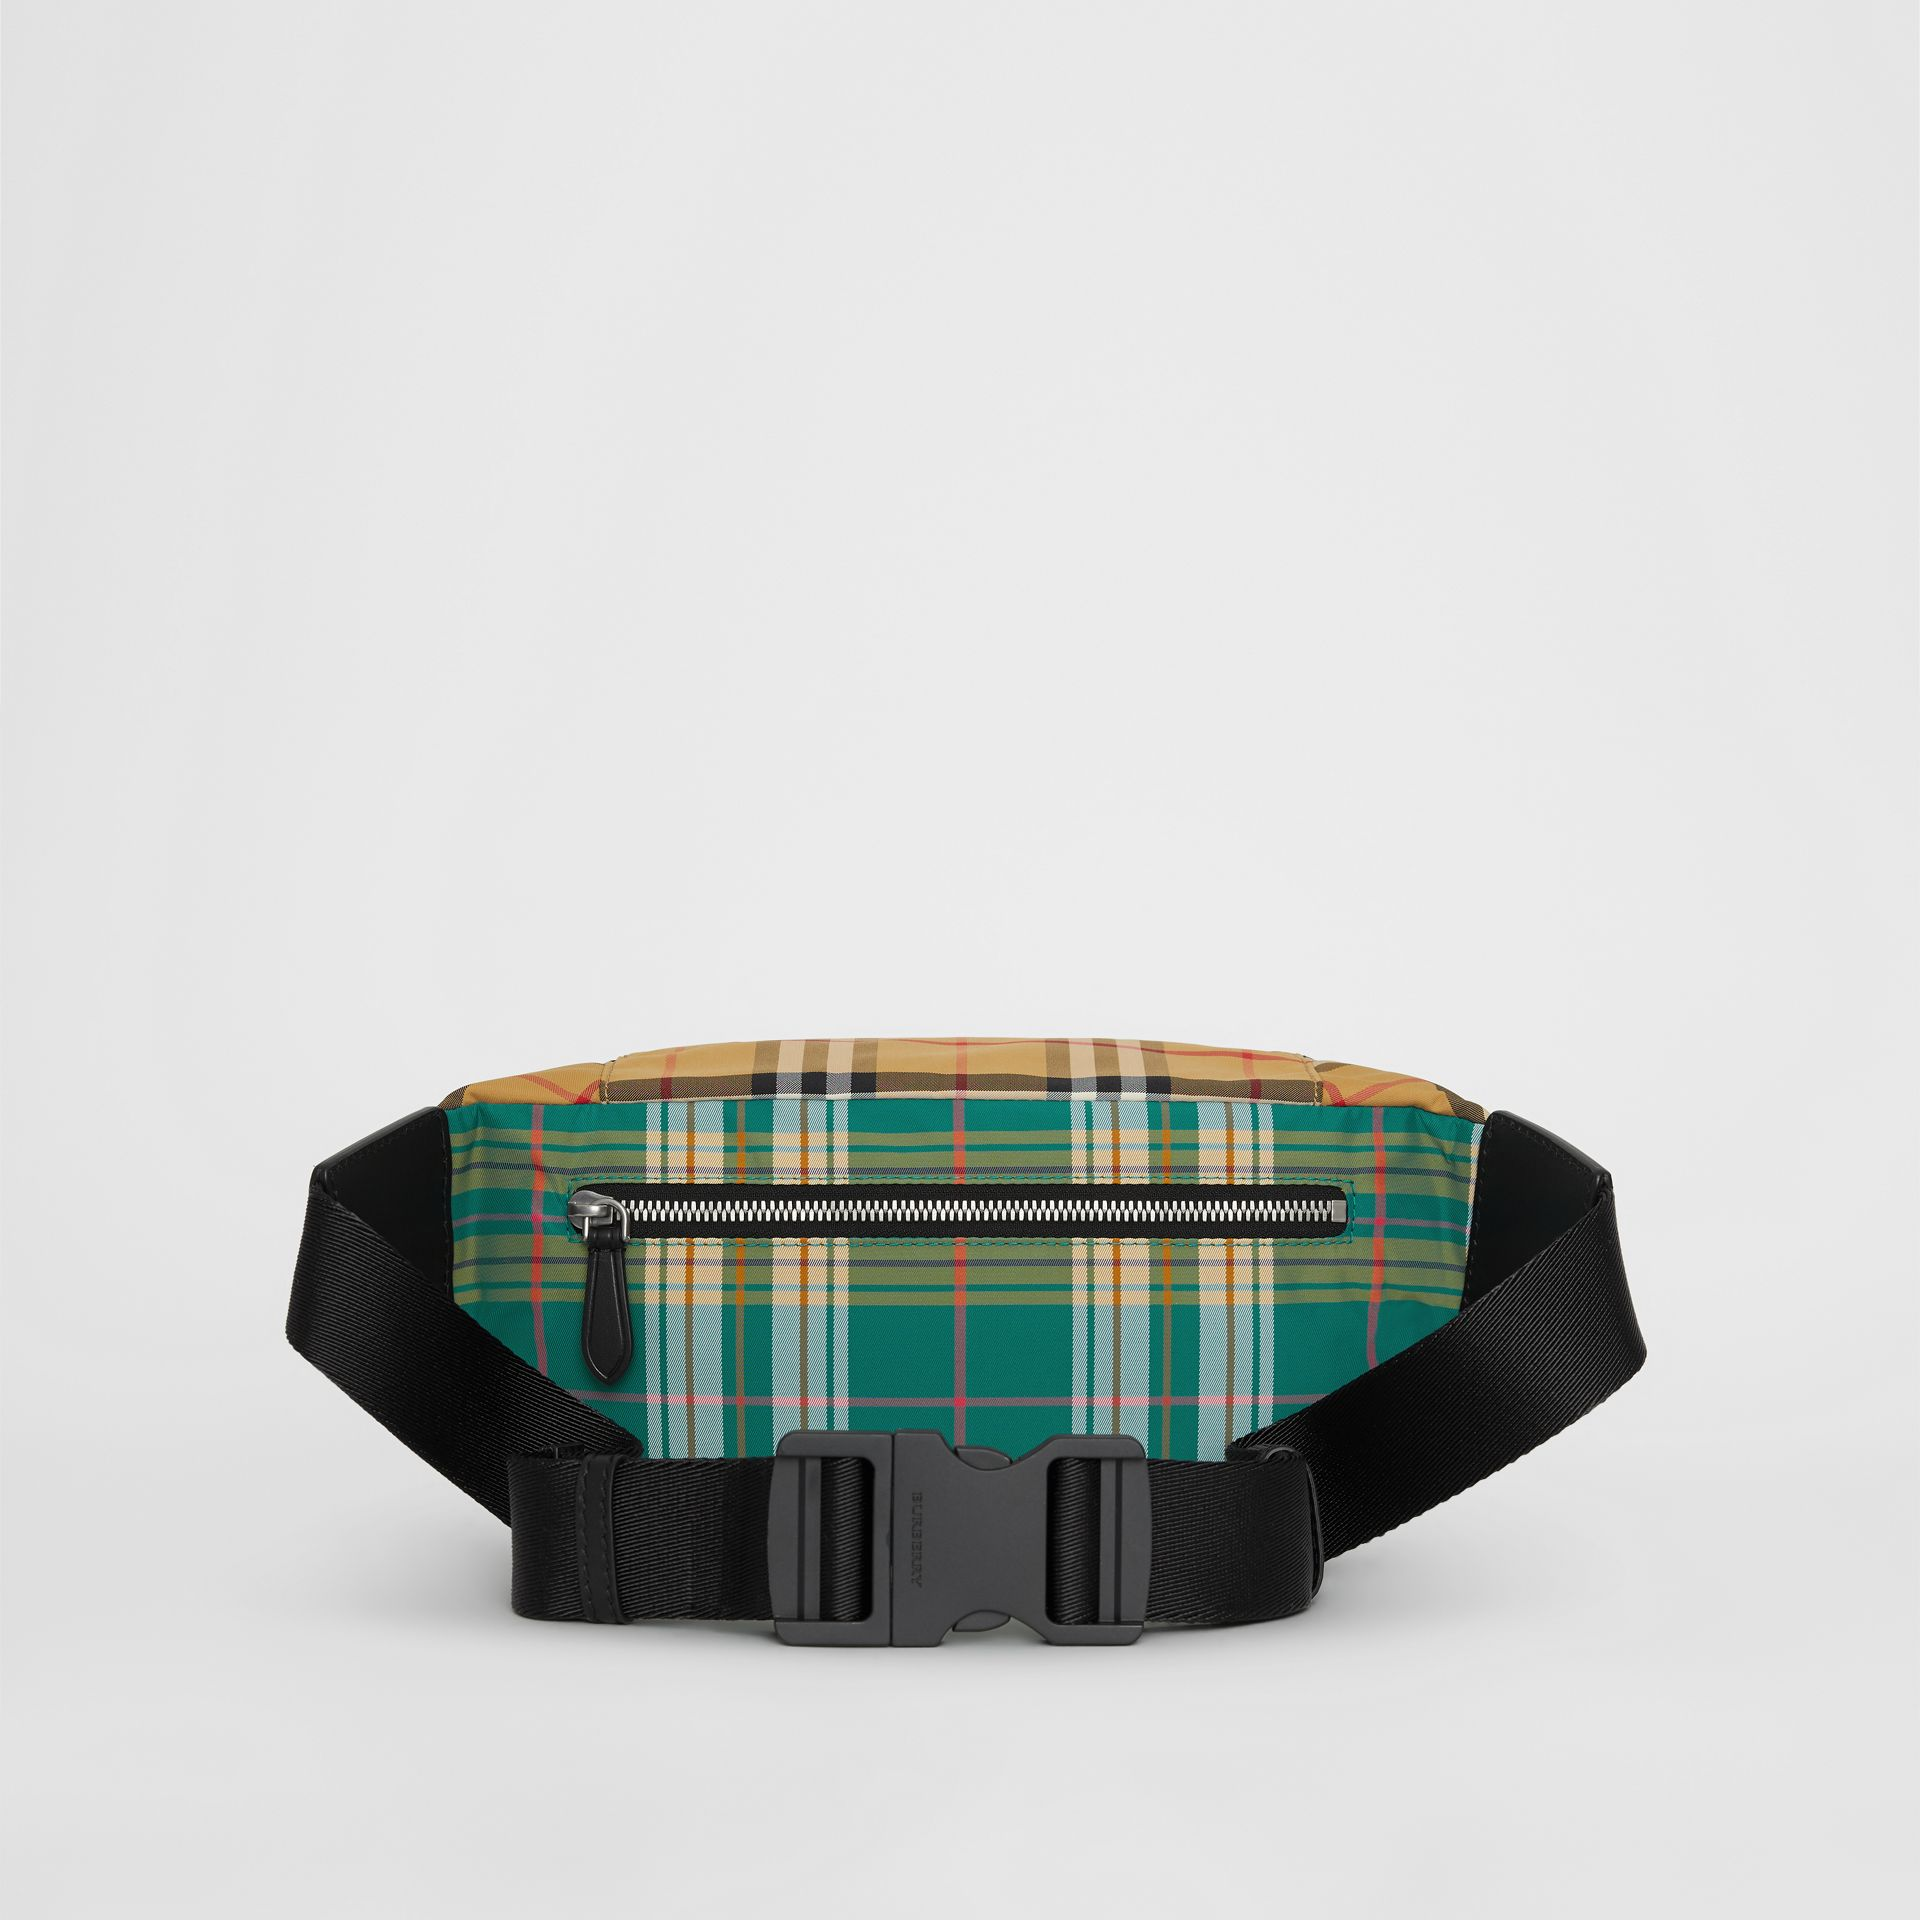 Medium Vintage Check and Tartan Bum Bag in Pine Green | Burberry Australia - gallery image 5